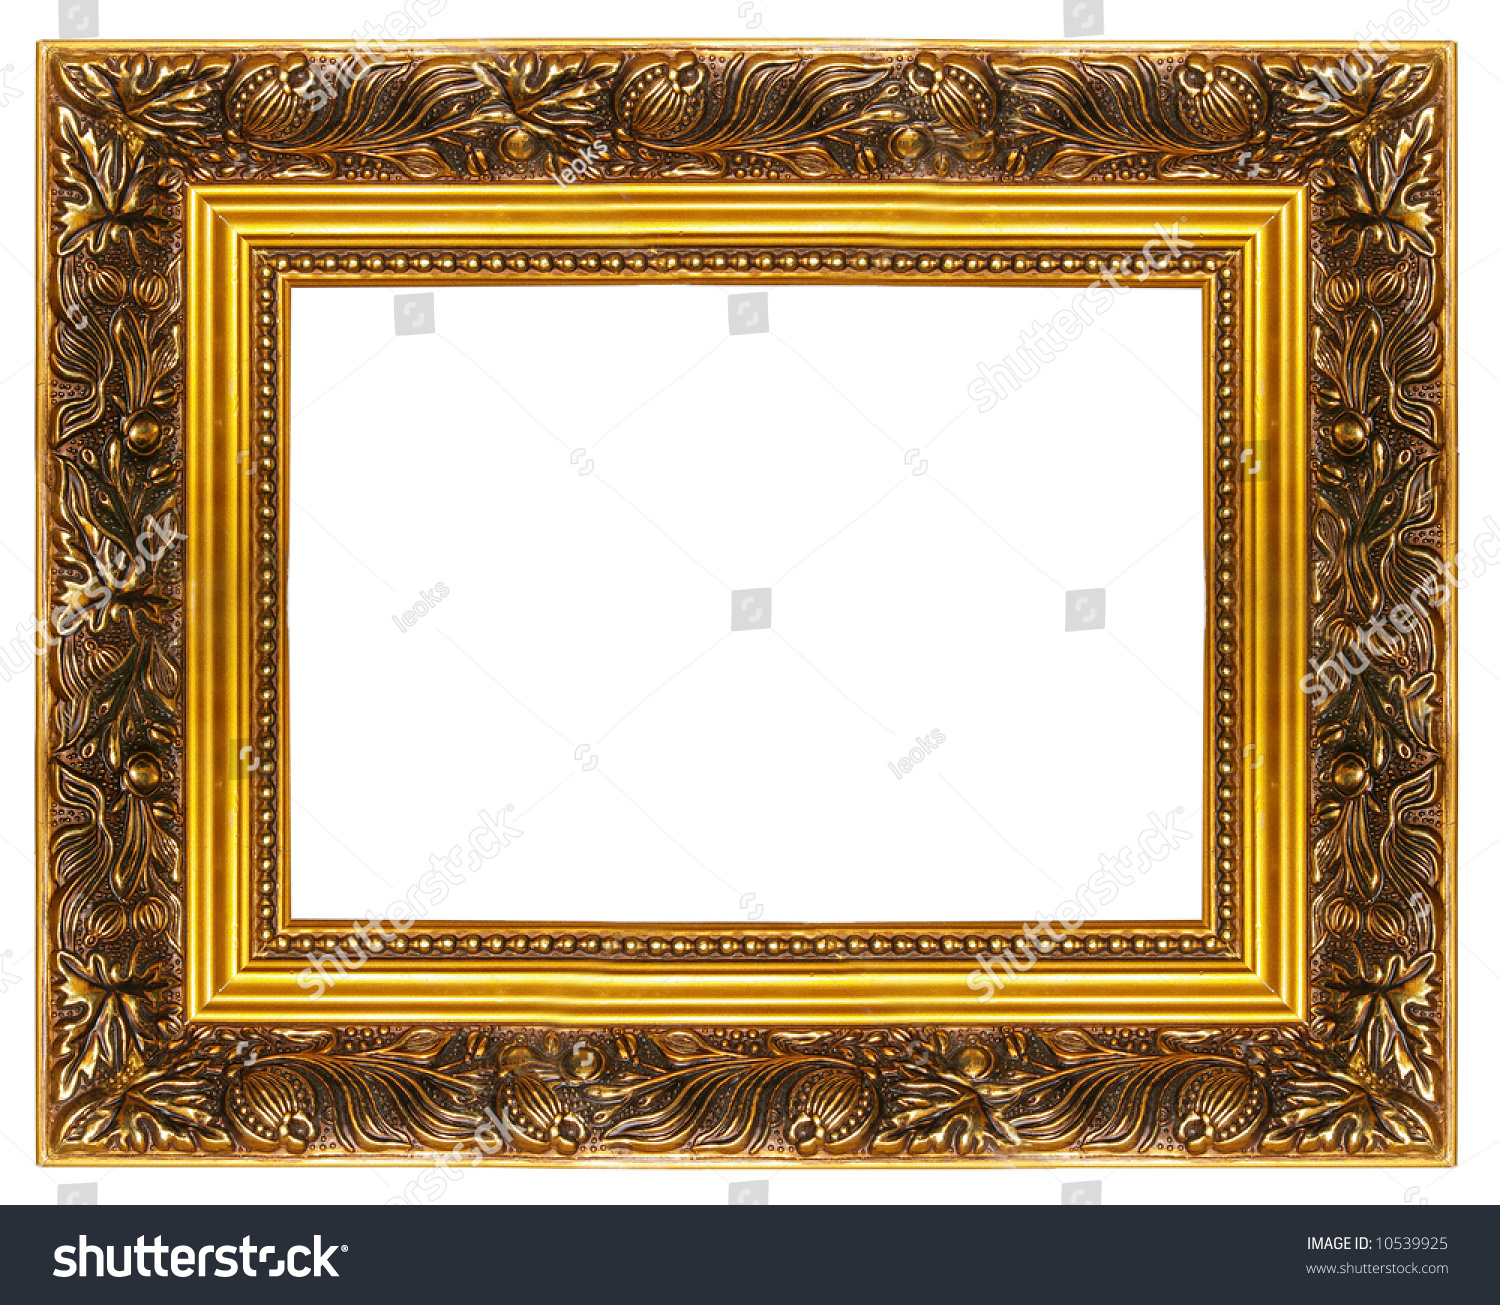 Beauty In Frame: Beautiful Classic Frame (From My Frames Collection) Stock